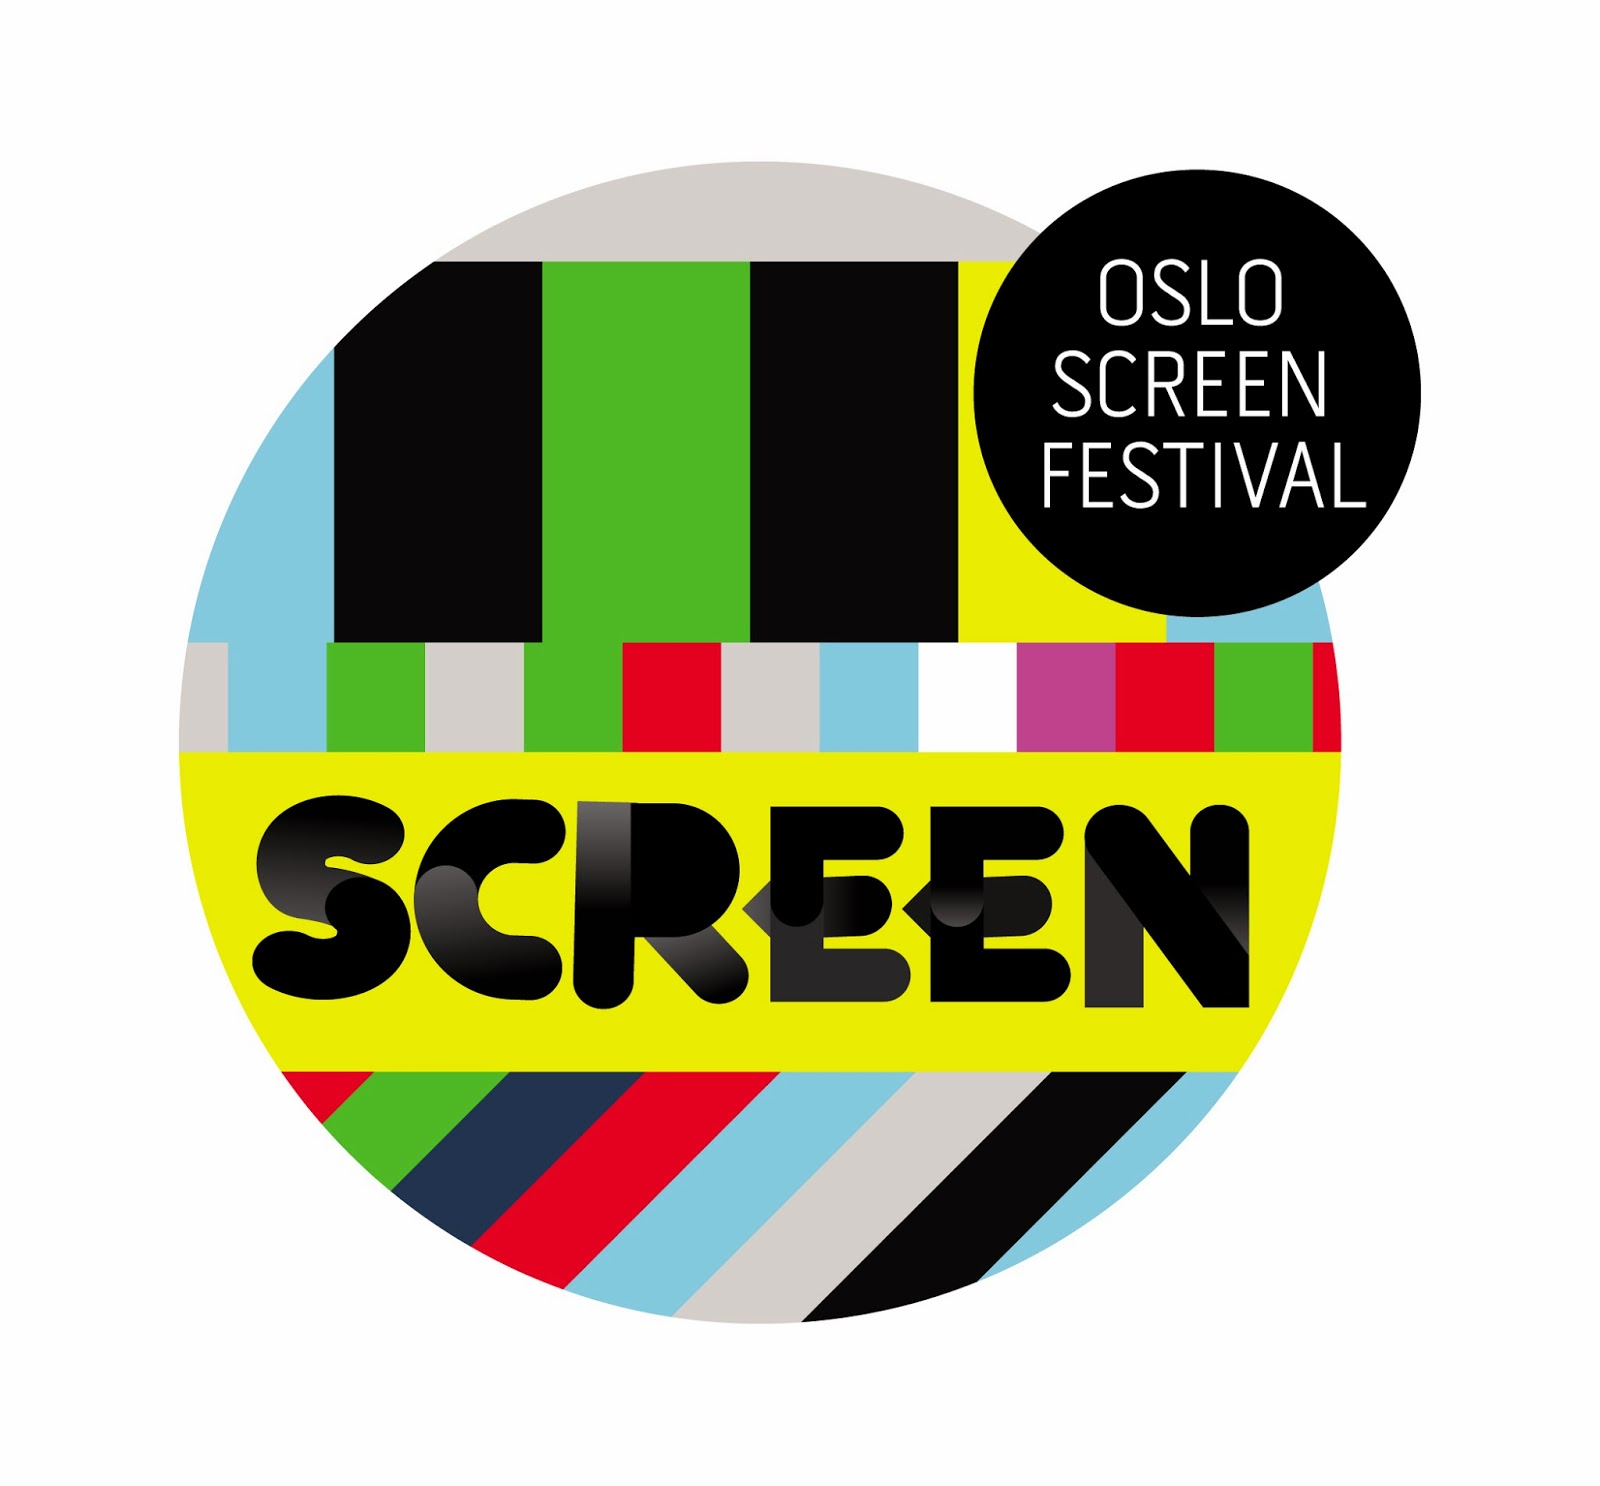 http://screenfestival.no/